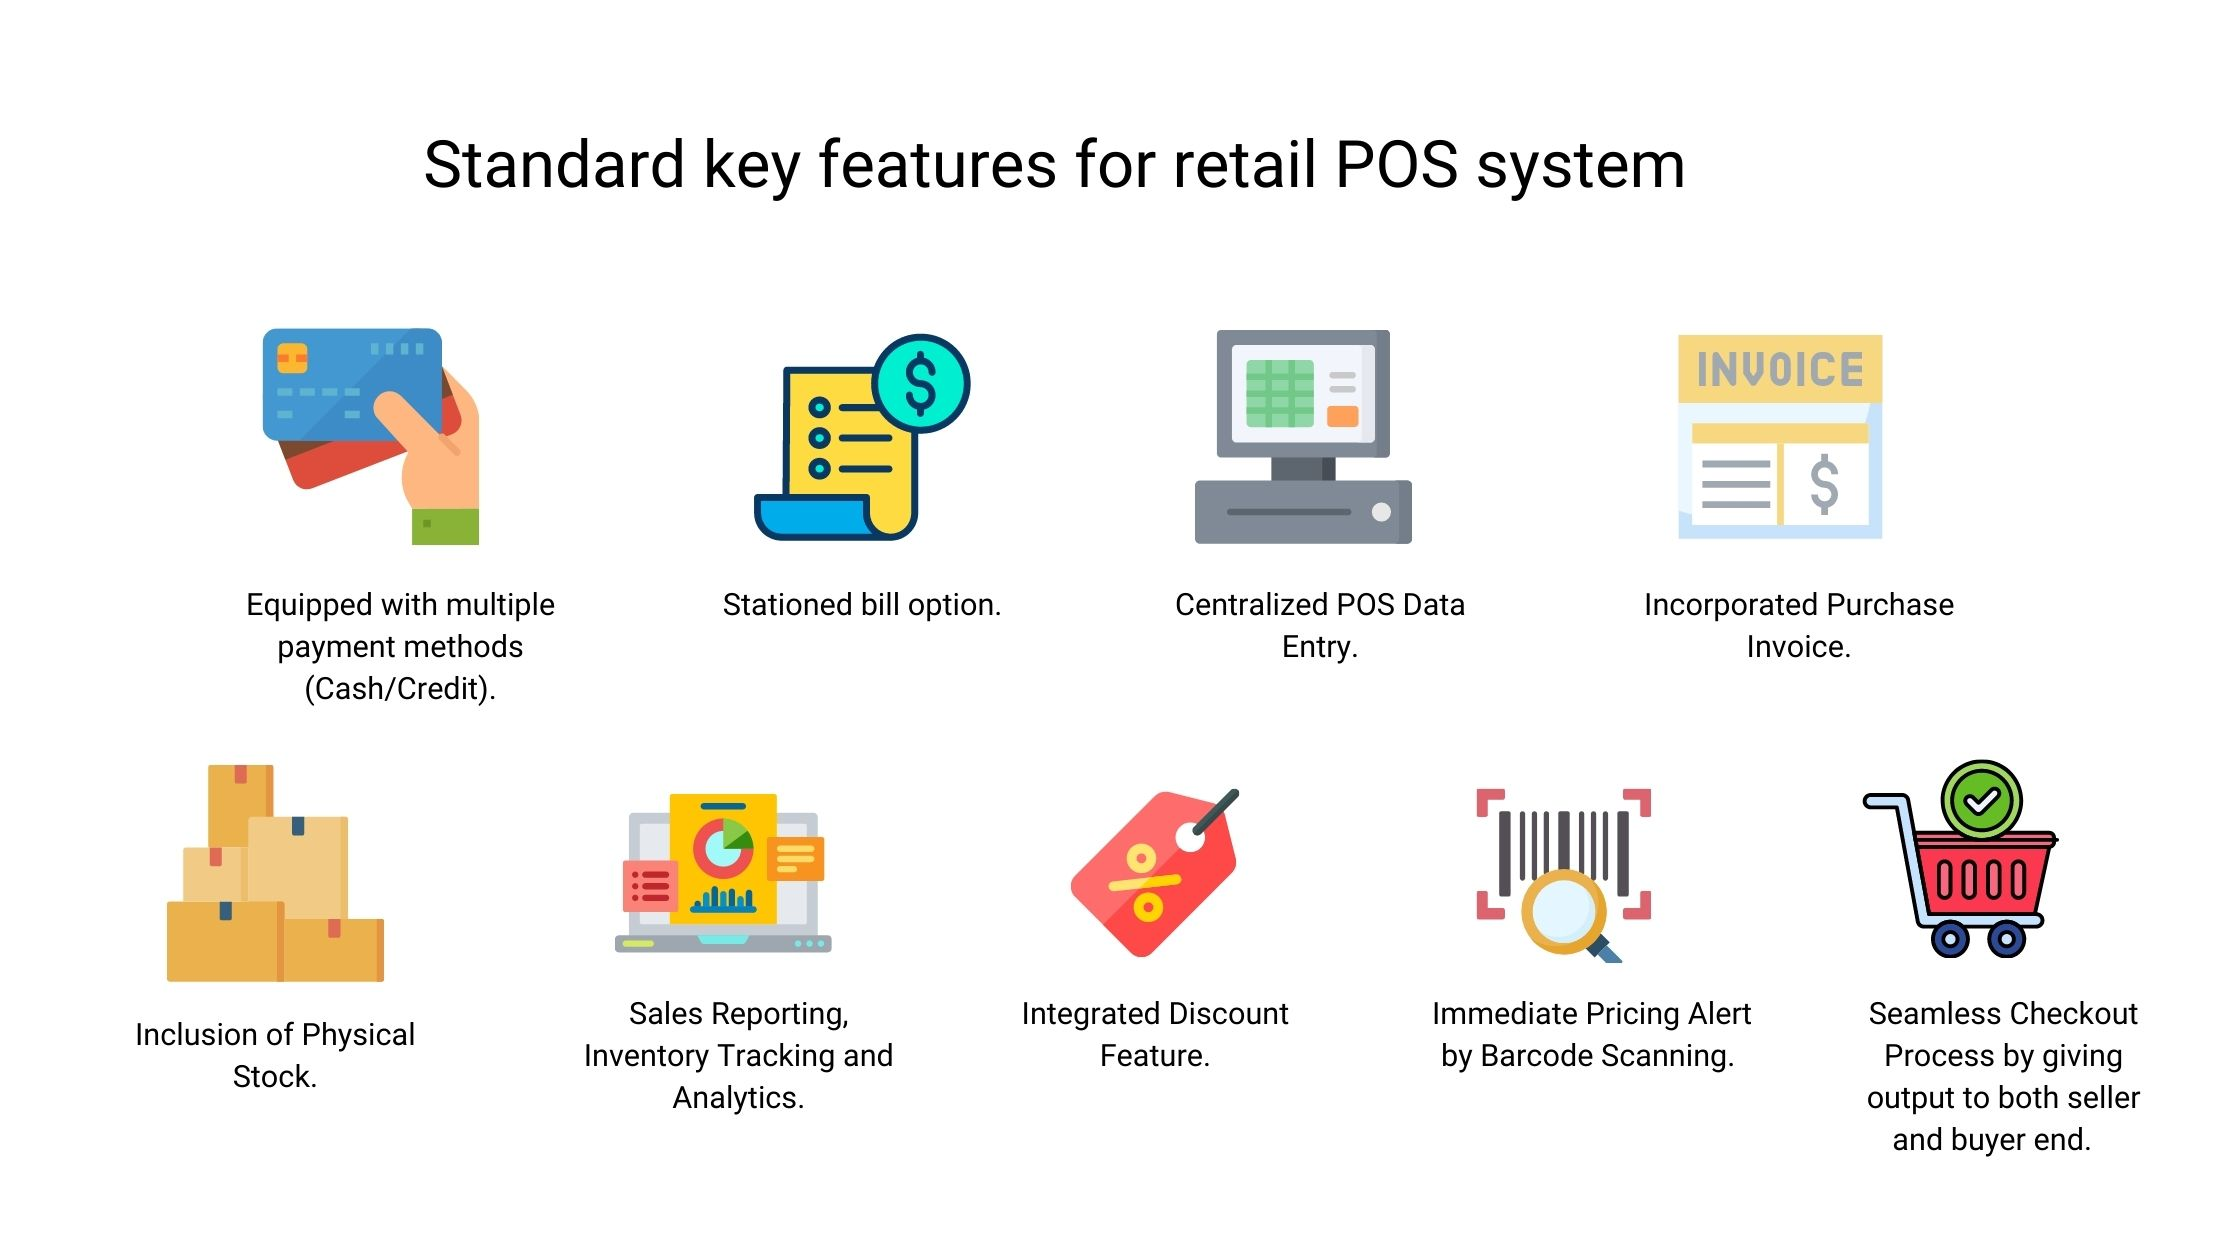 Standard key features for retail POS system